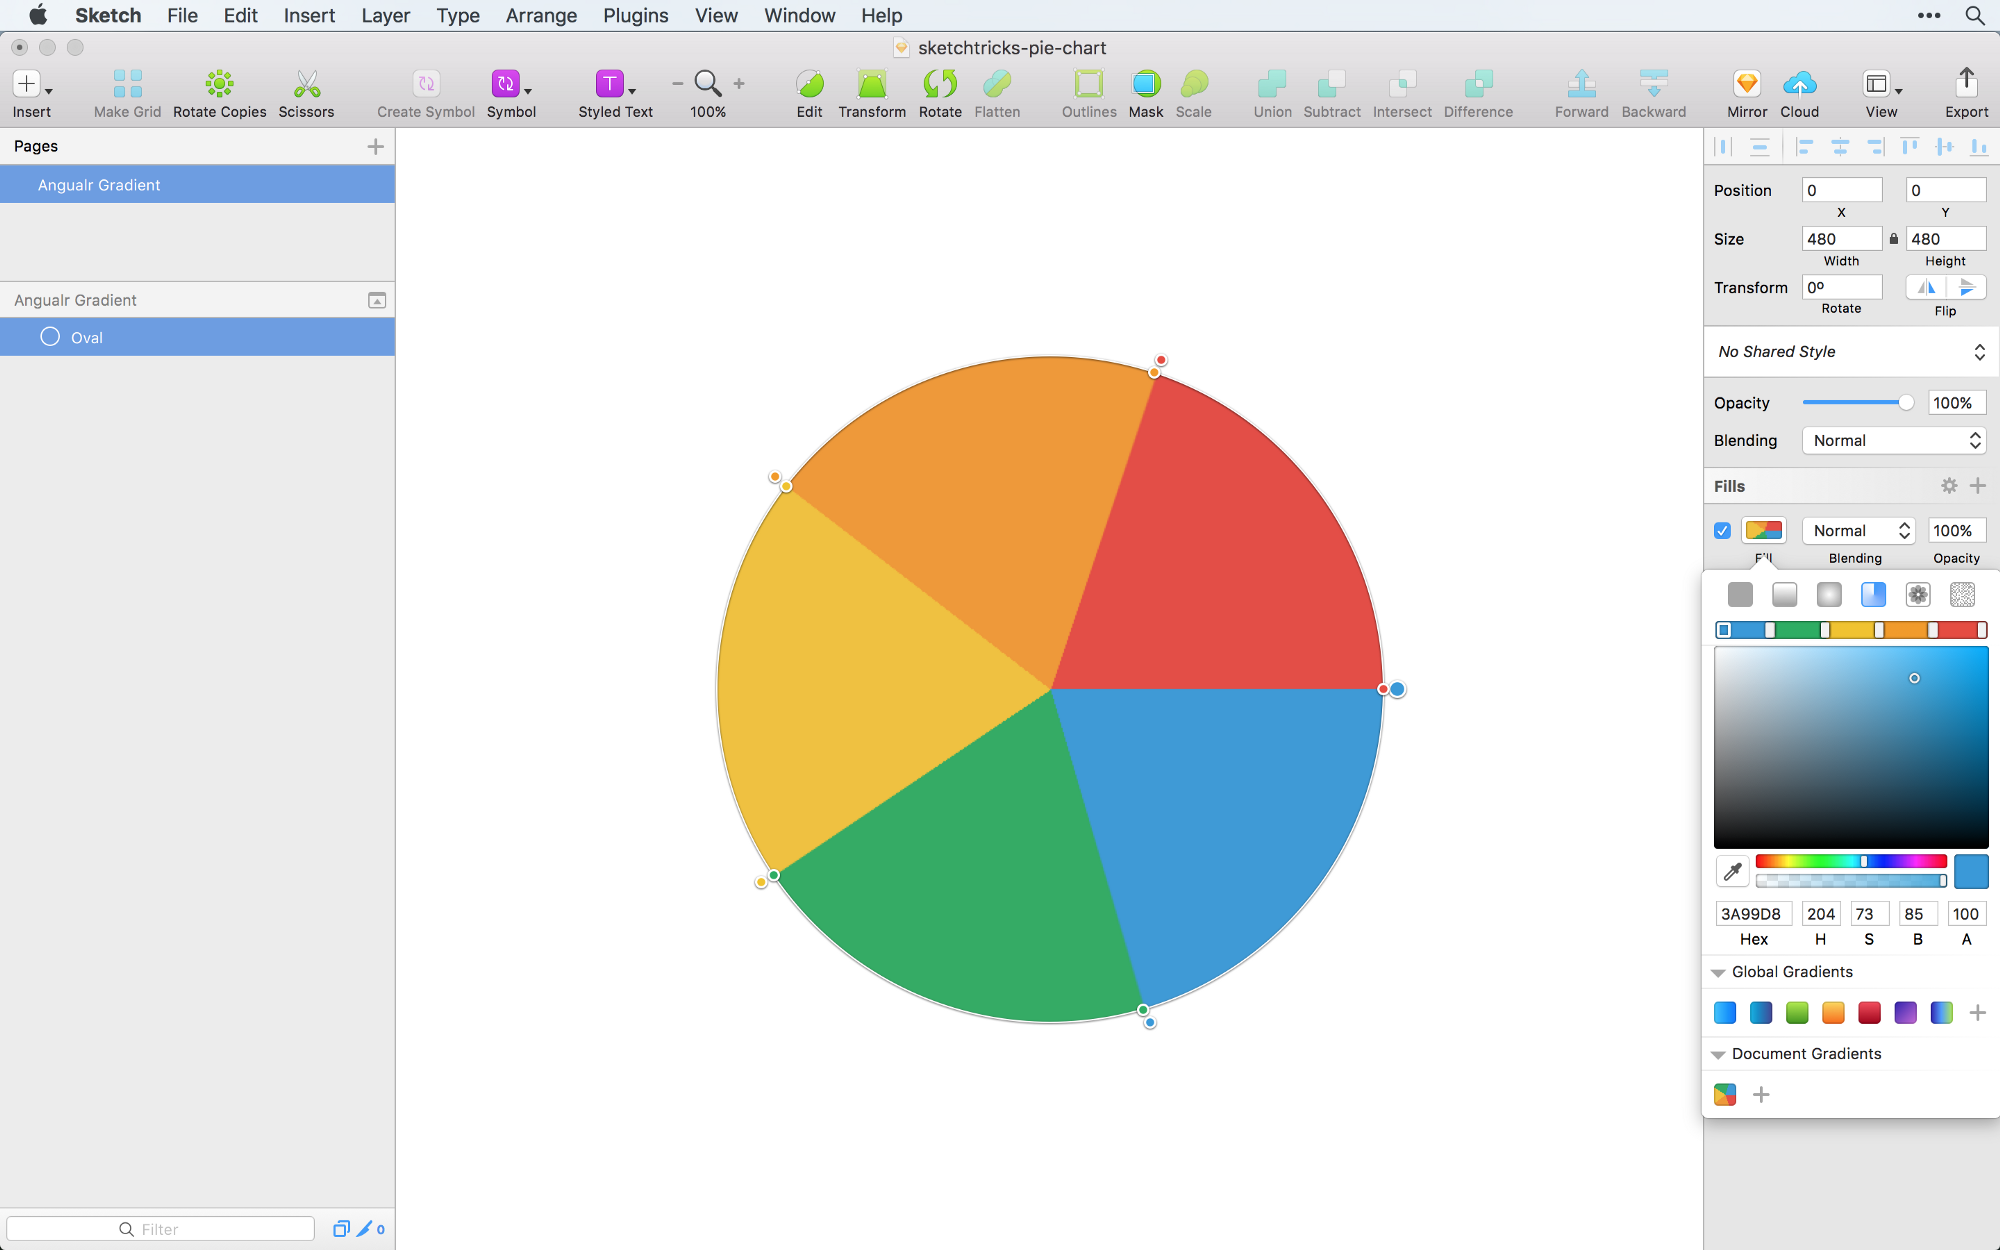 Creating A Pie Chart In Sketch The Right Way Sketch Tricks Medium